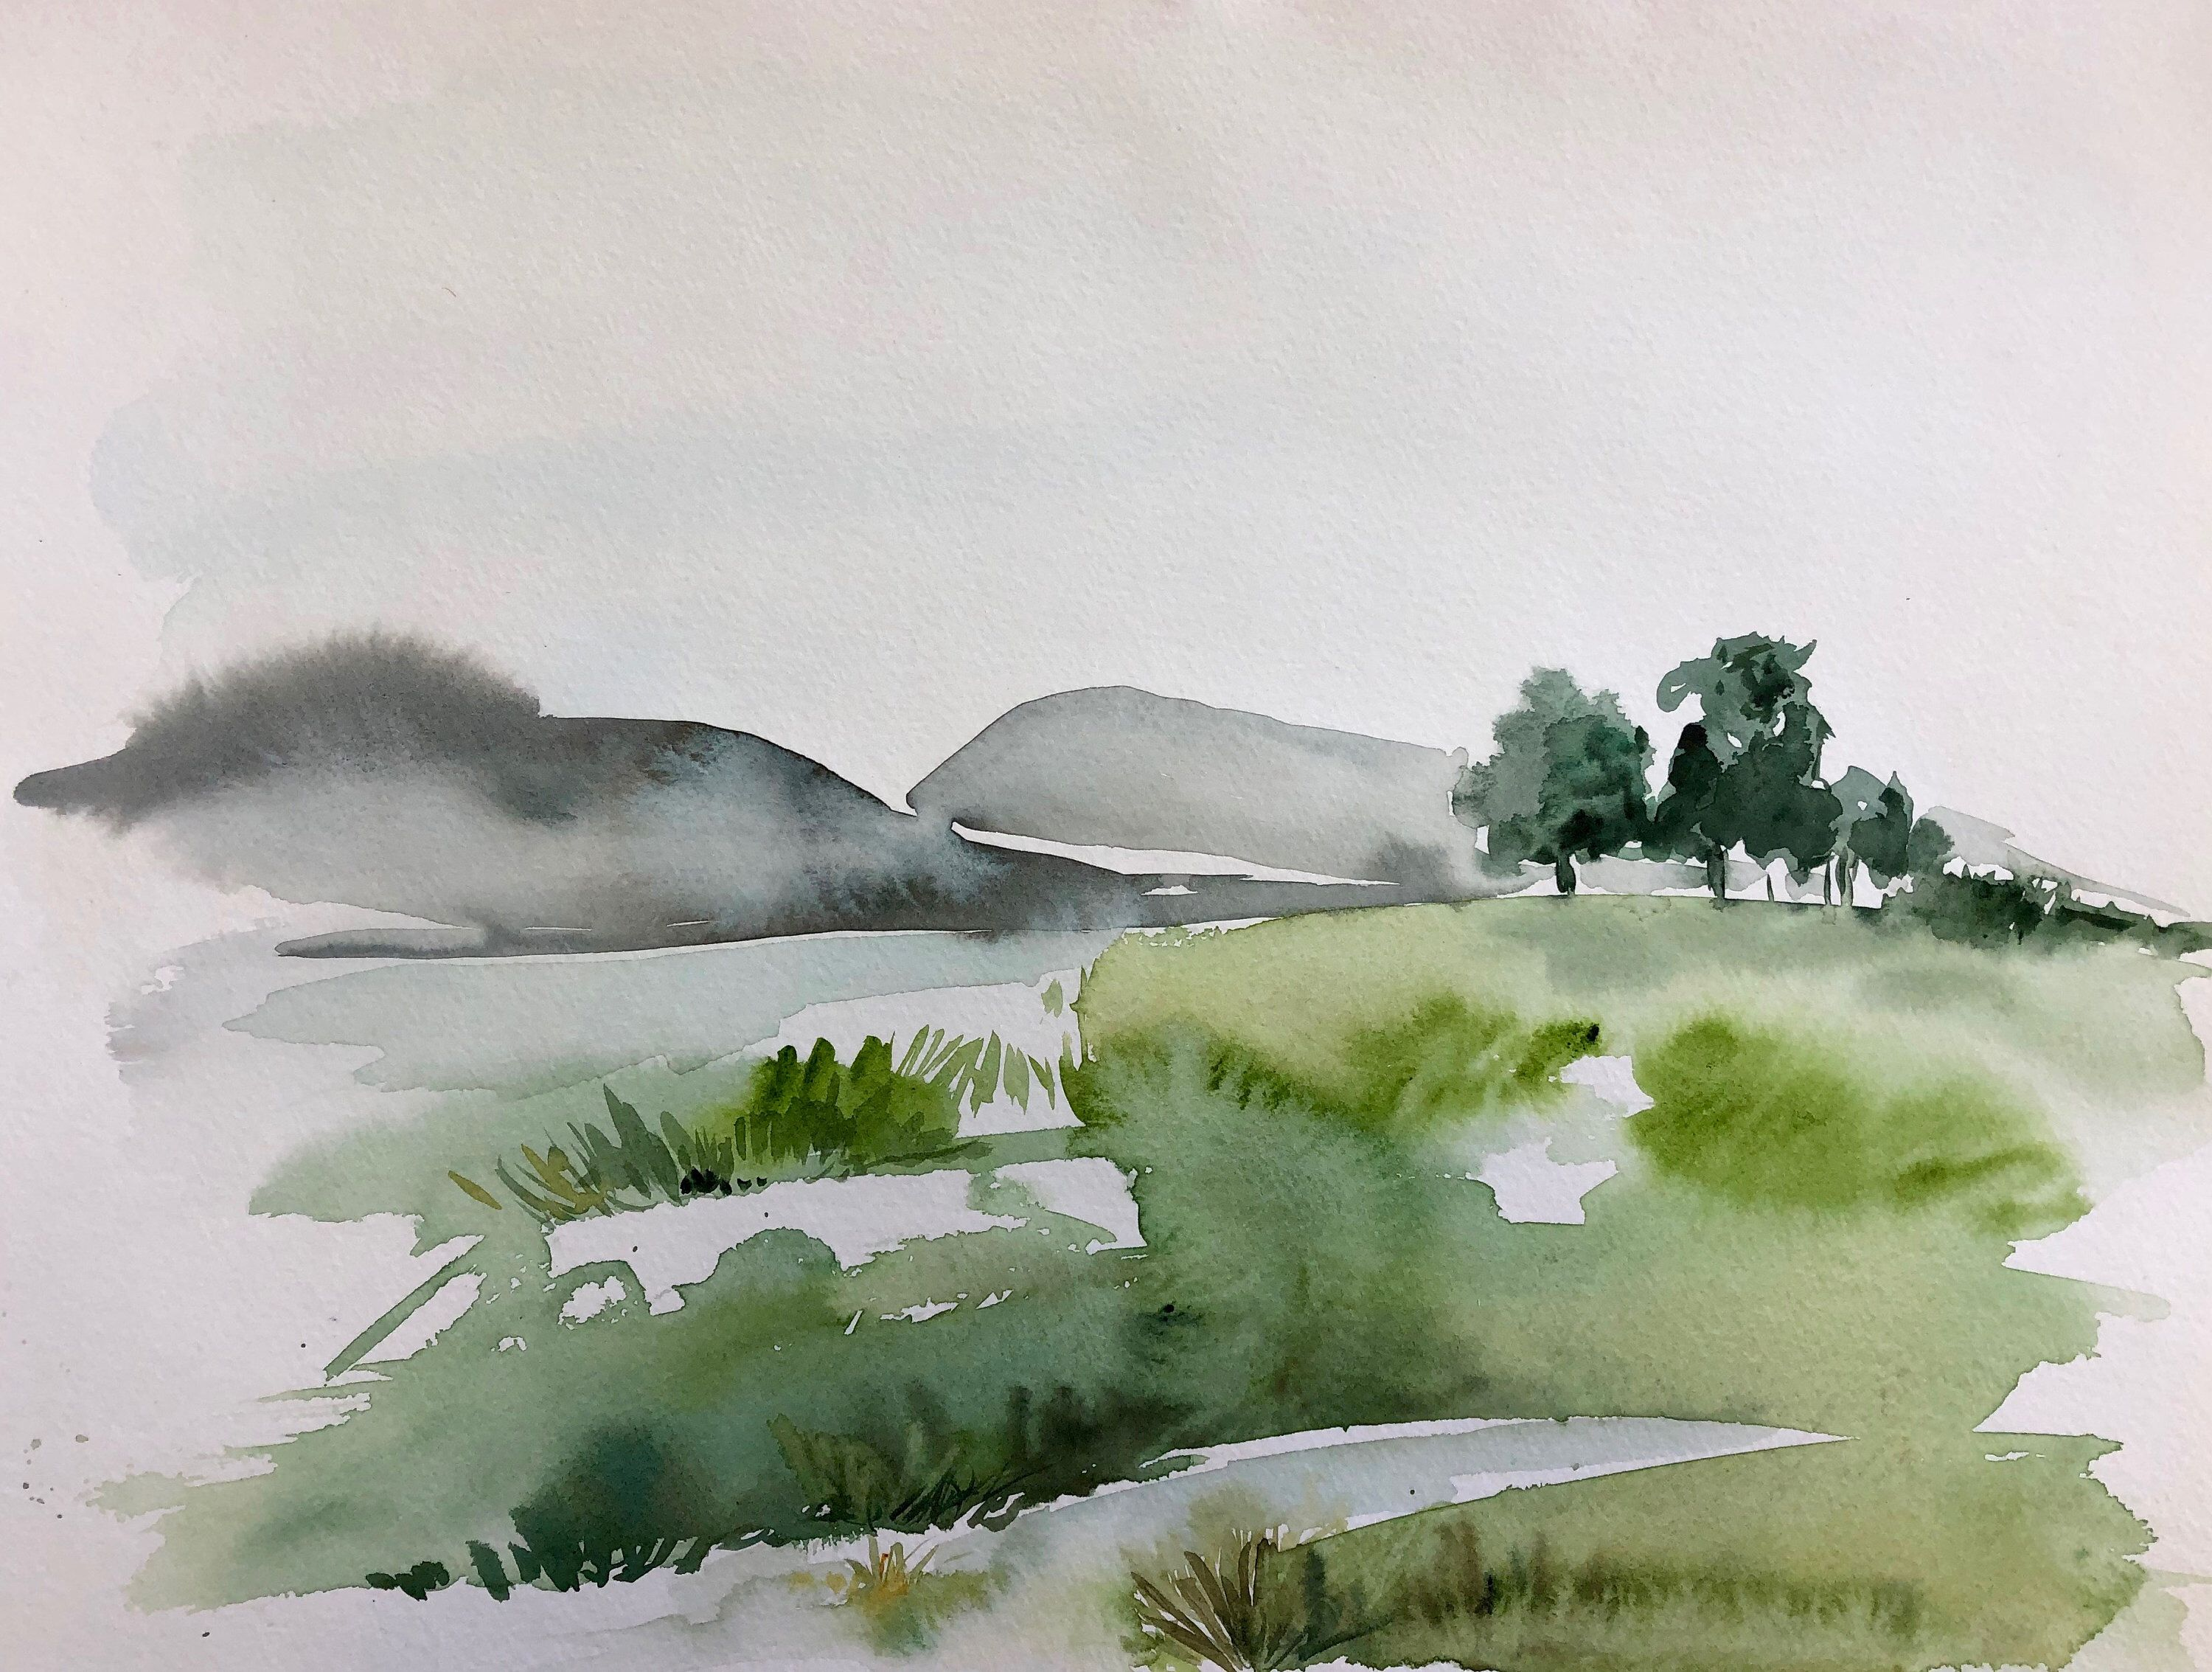 Original Watercolor Landscape Painting Lake District England Etsy In 2020 Watercolor Scenery Watercolor Landscape Paintings Watercolor Landscape